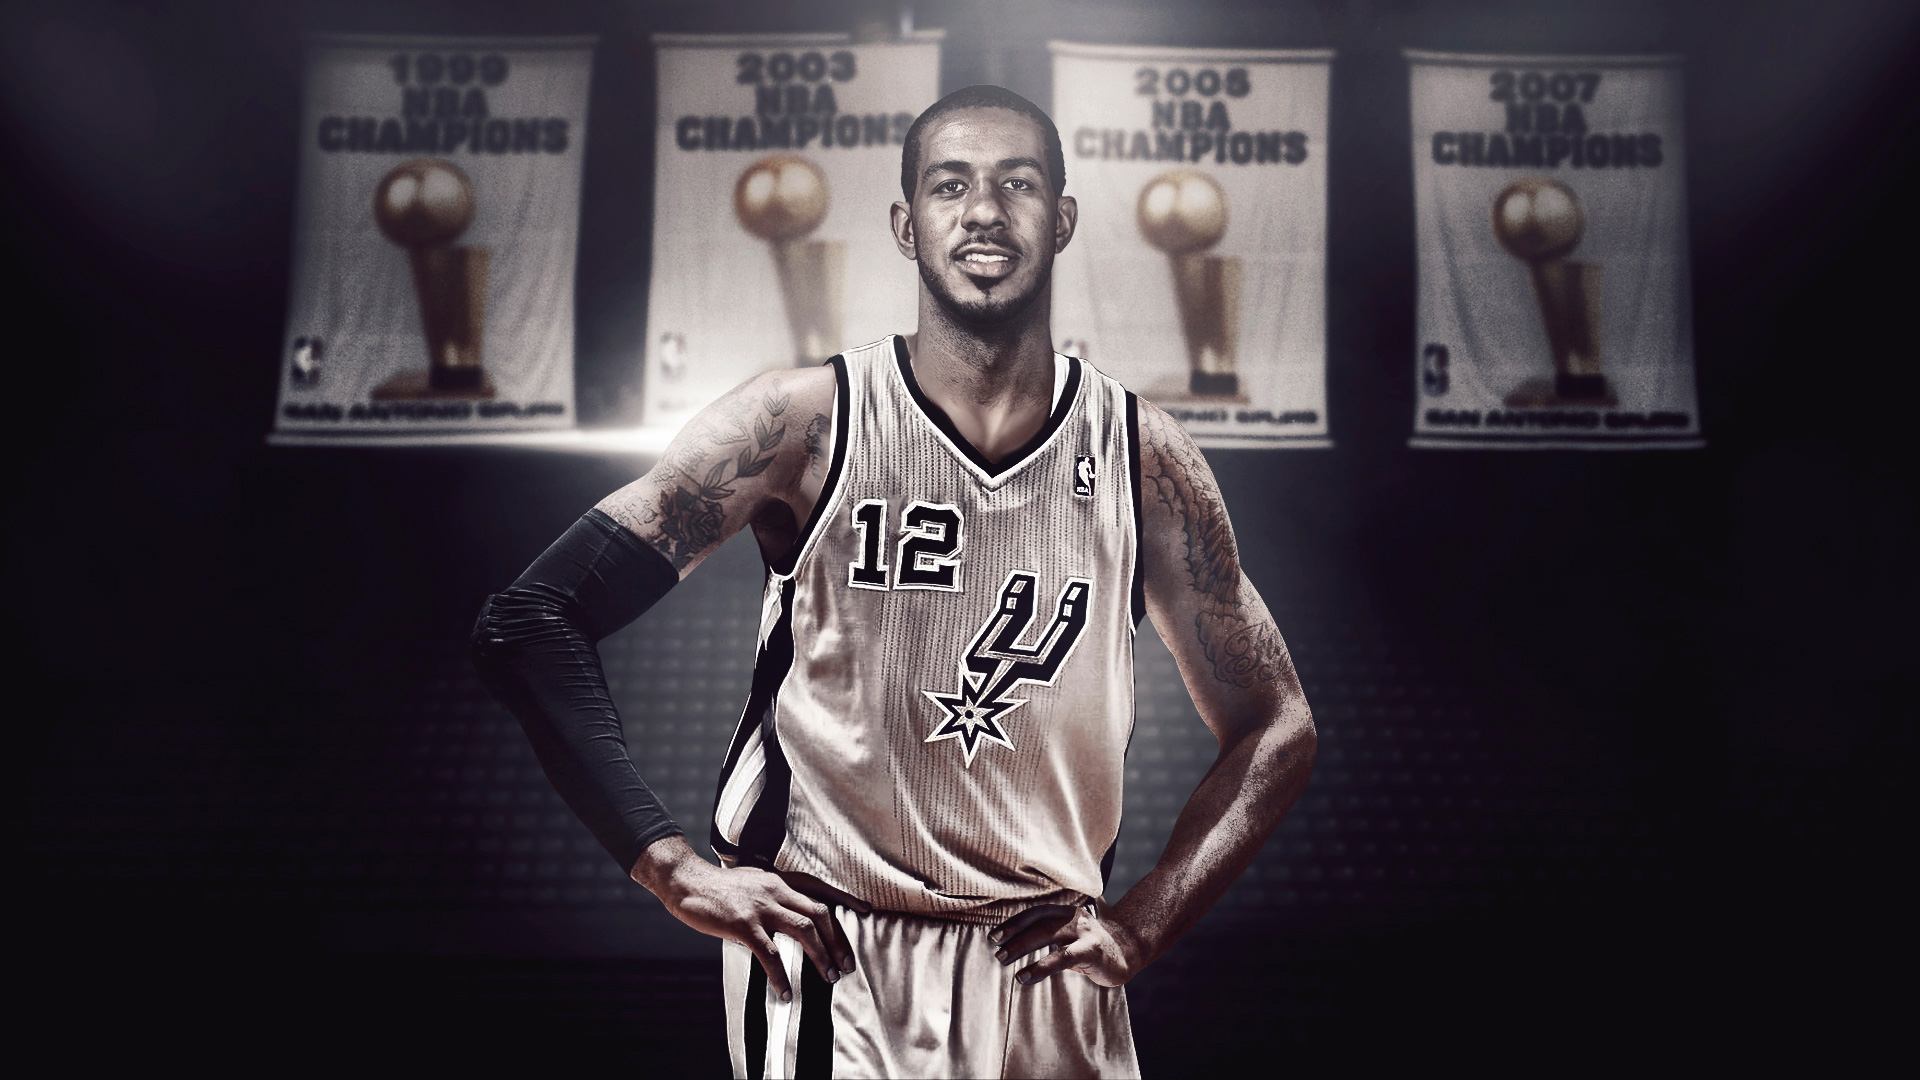 LaMarcus Aldridge Spurs Banners Wallpaper